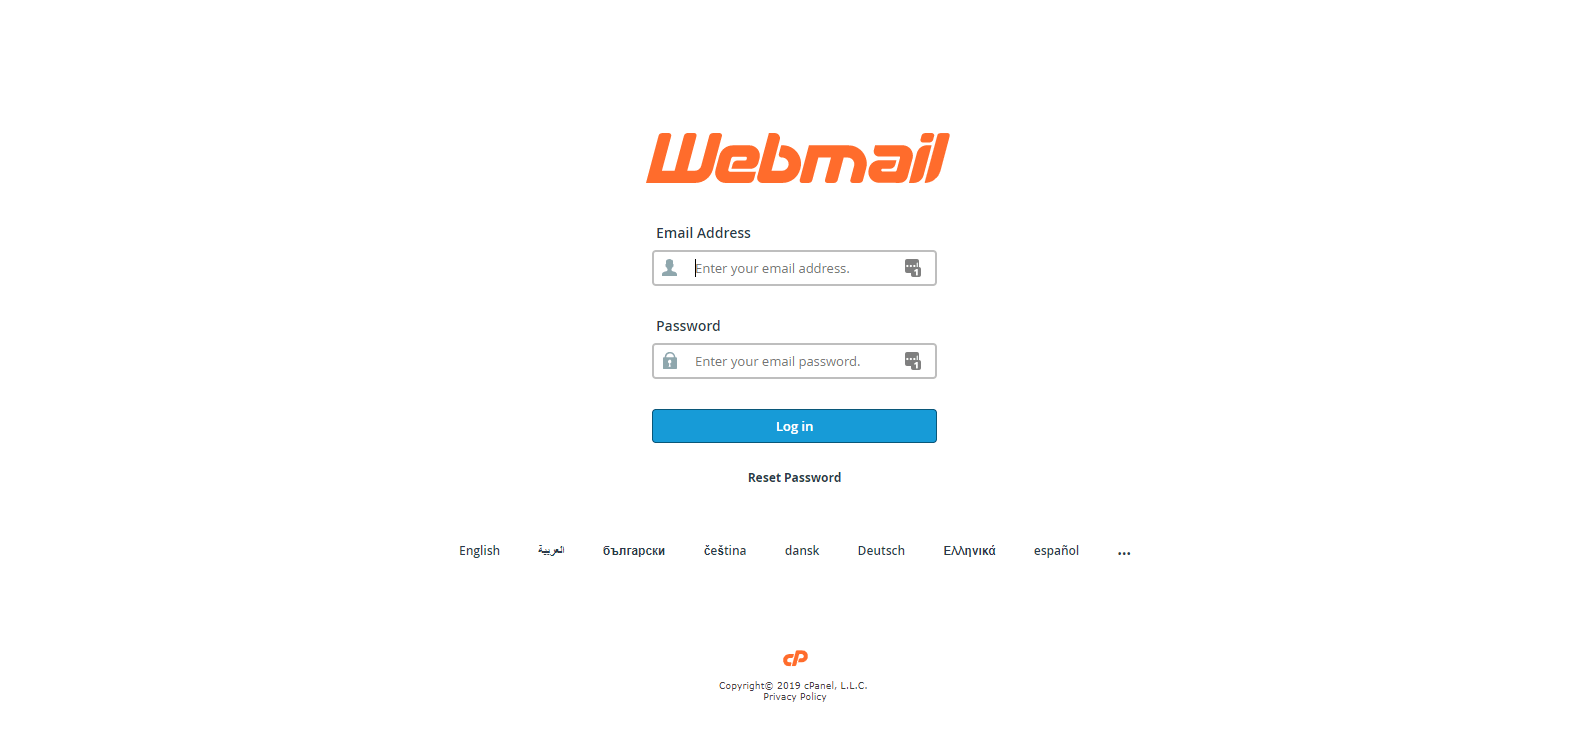 Webmail & how to use it - Ballito Web Design